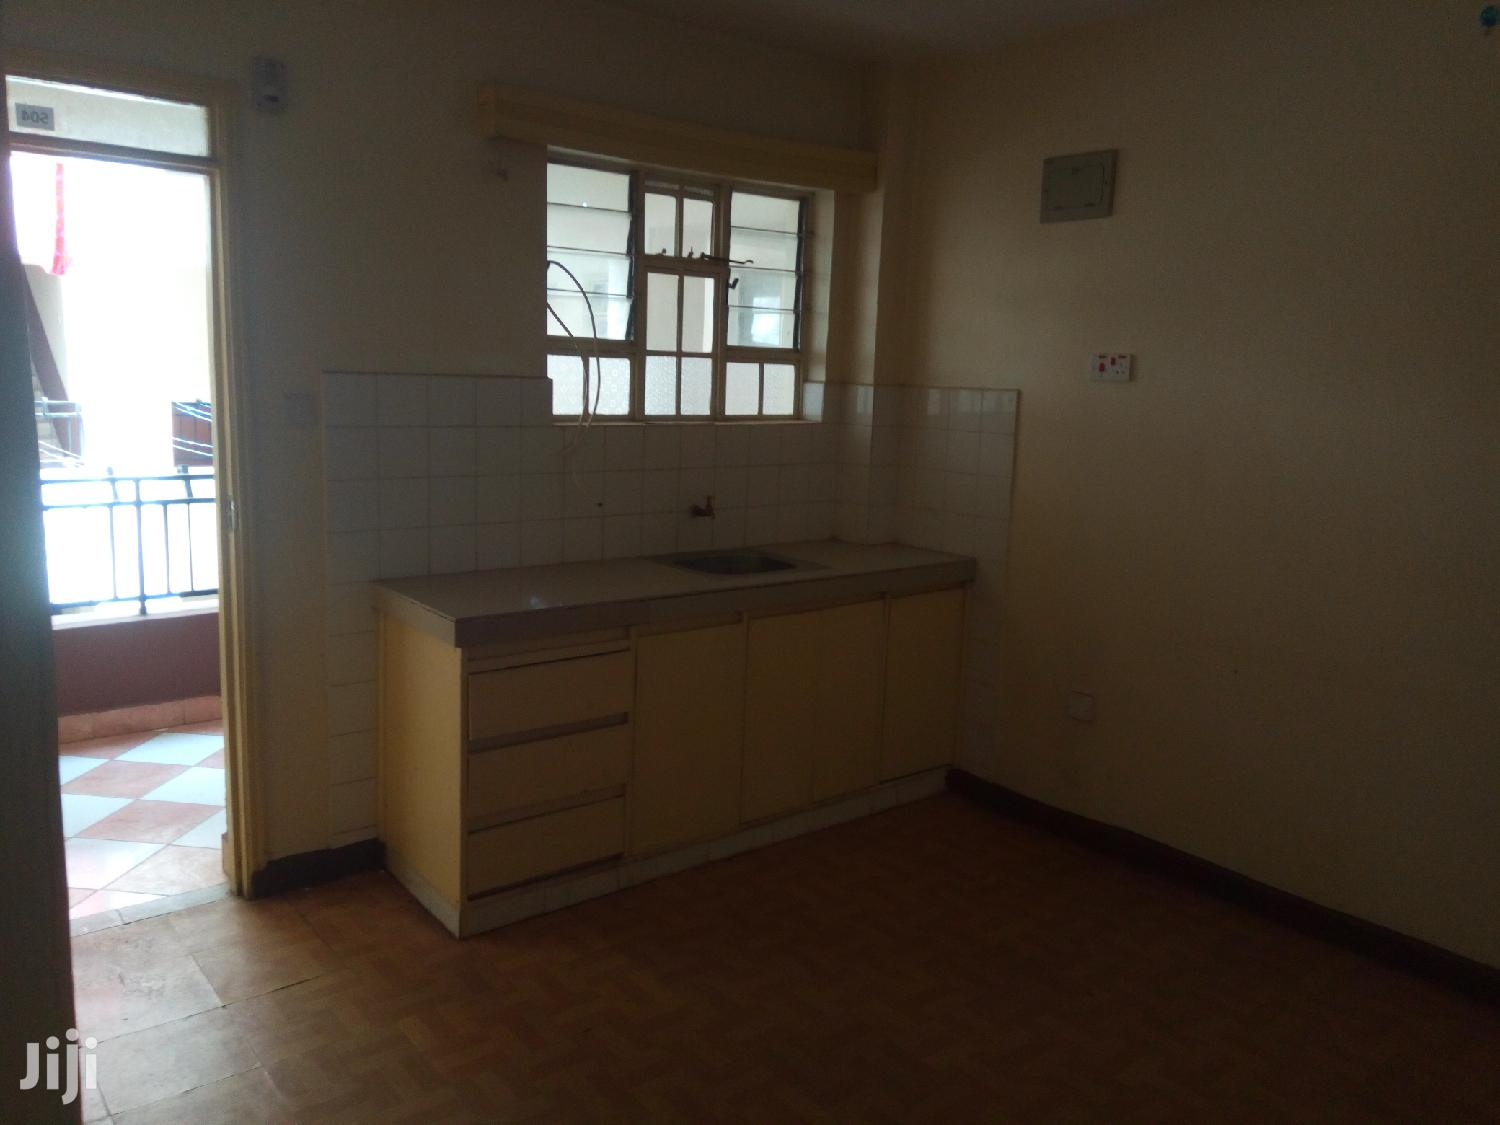 One Bedroom Next To Road @12k | Houses & Apartments For Rent for sale in Ongata Rongai, Kajiado, Kenya